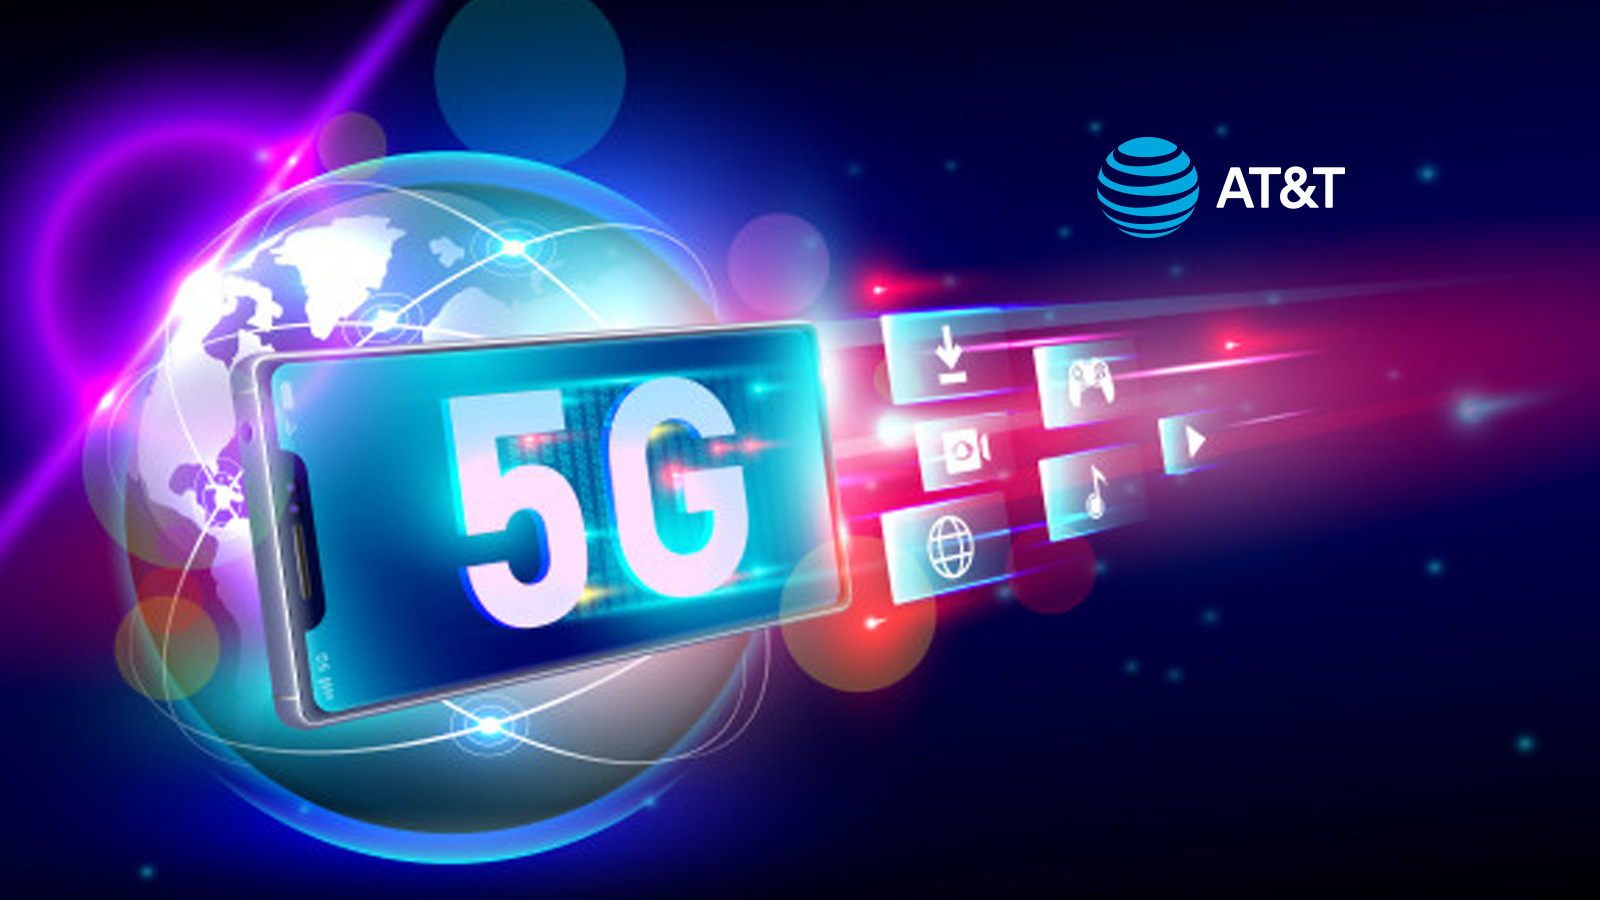 AT&T Turns on 5G for Consumers: What You Need to Know